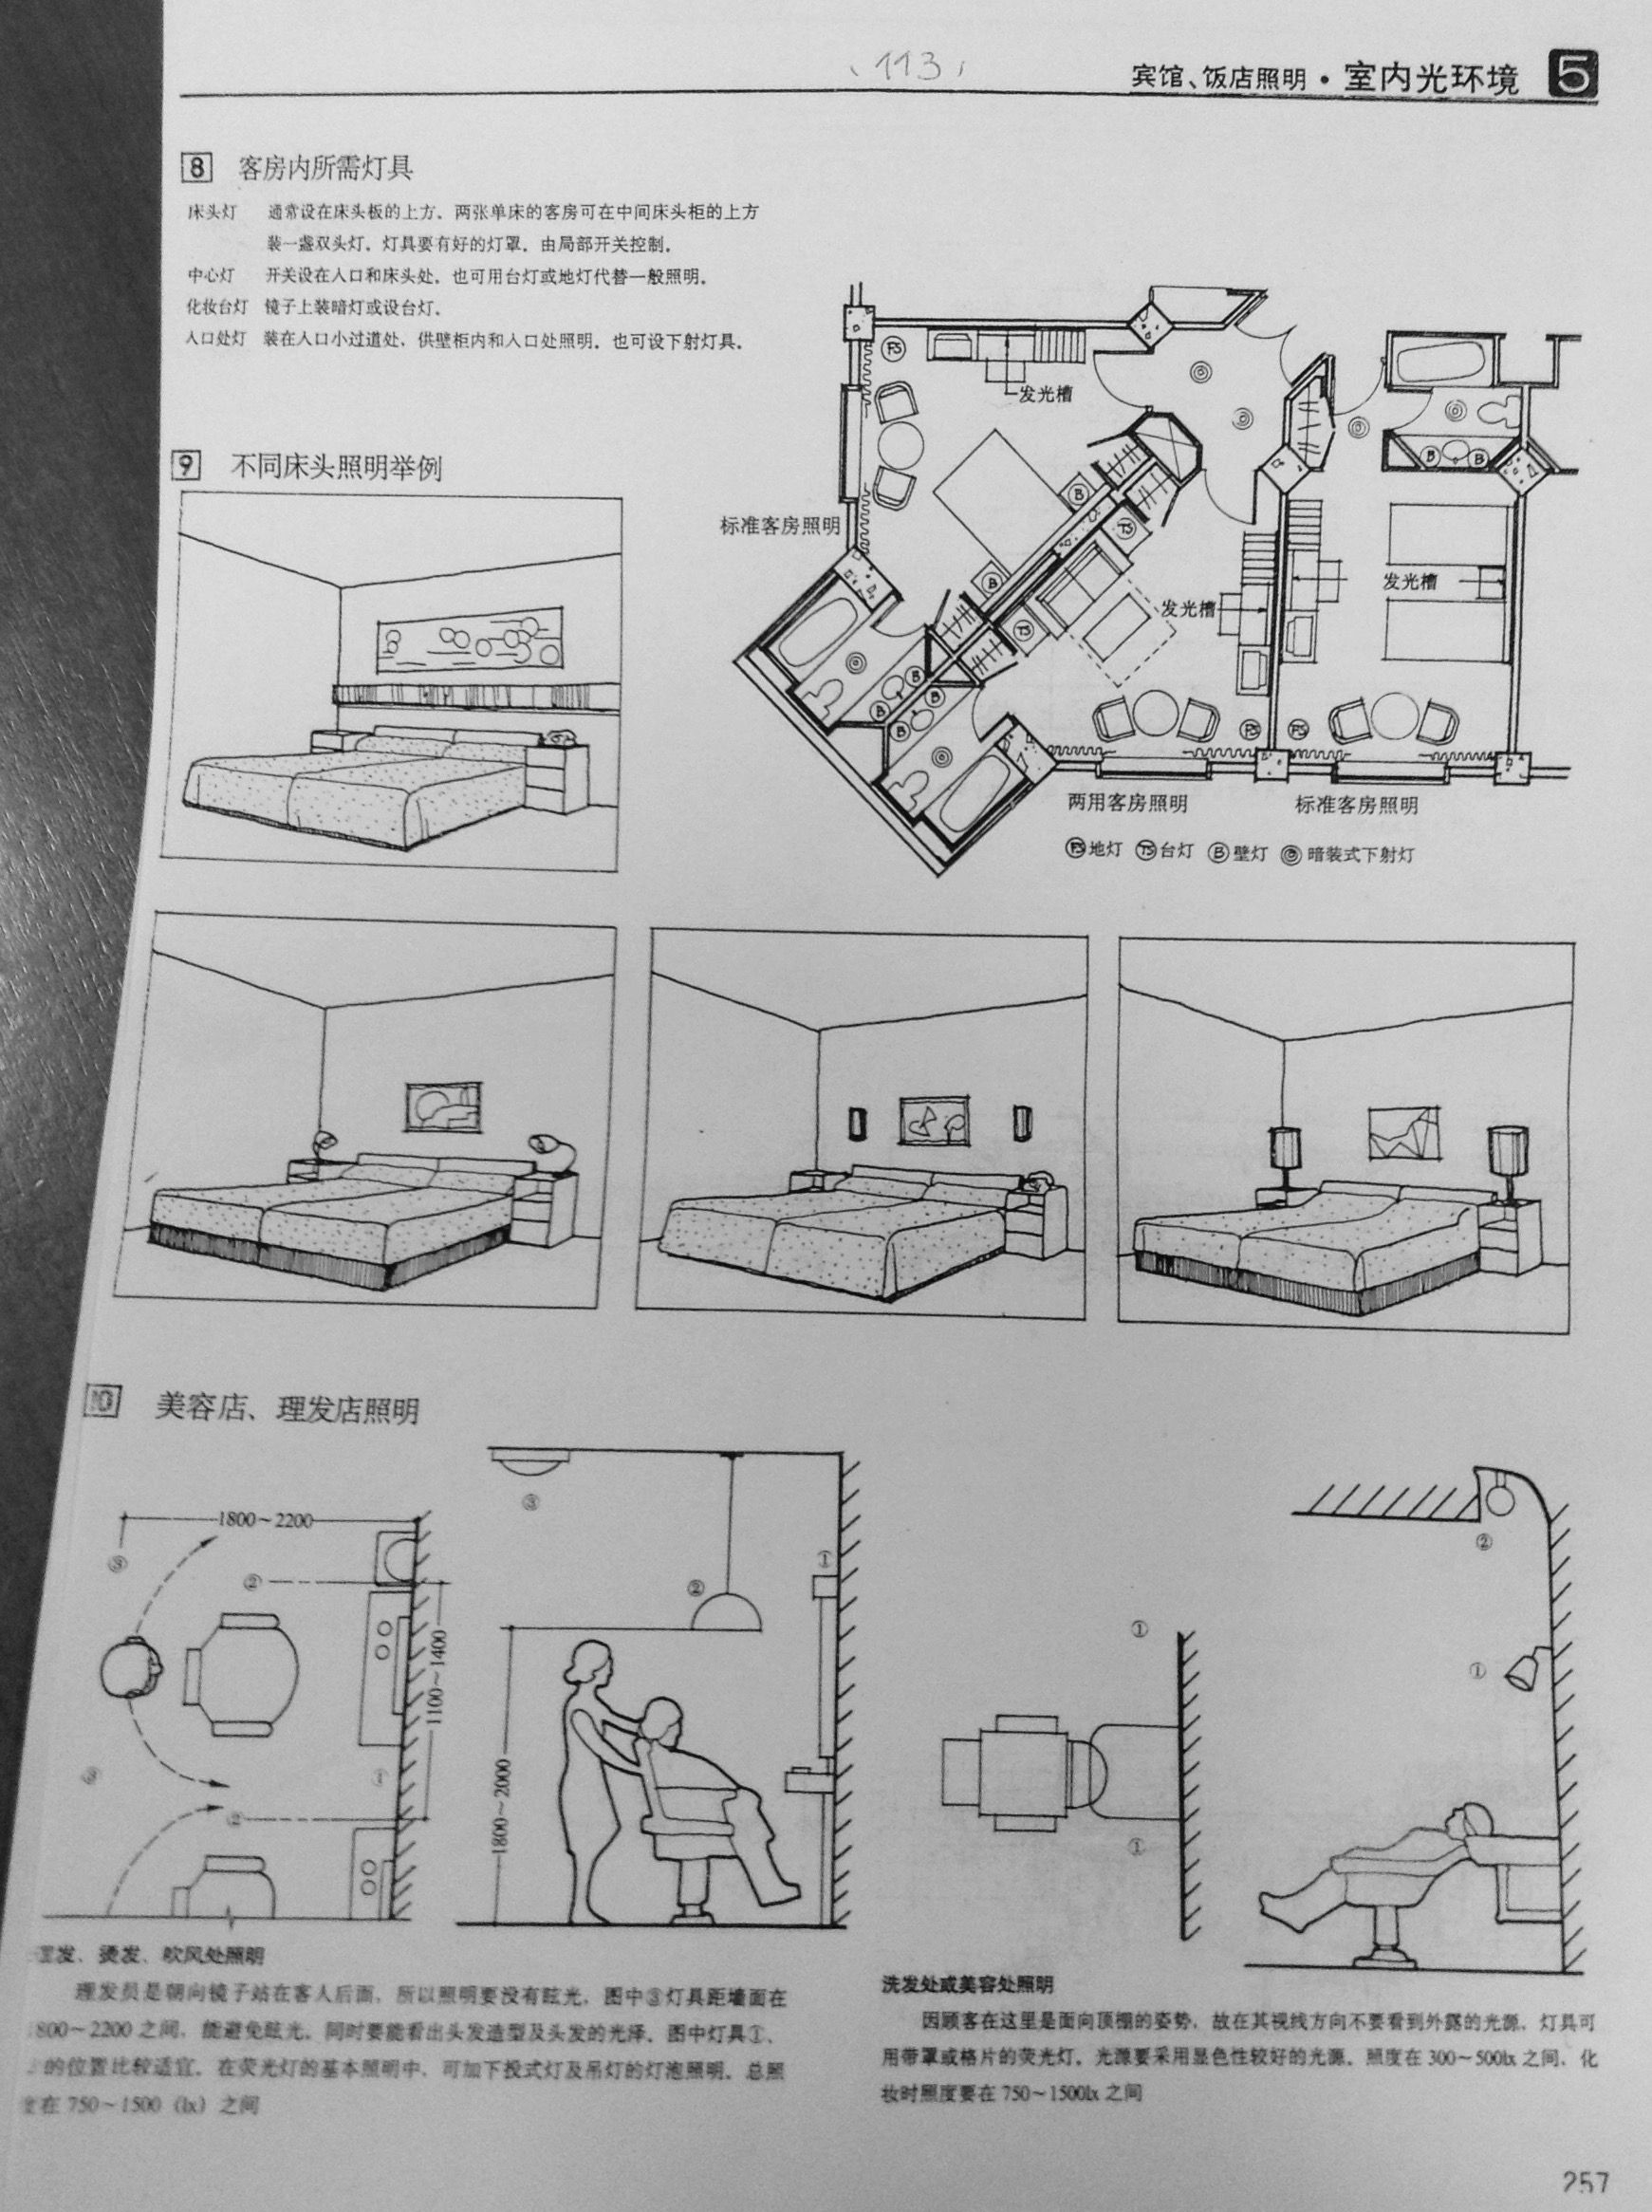 ergonomic workstation diagram wiring motor control pictures to pin on pinterest by l b ergonomics